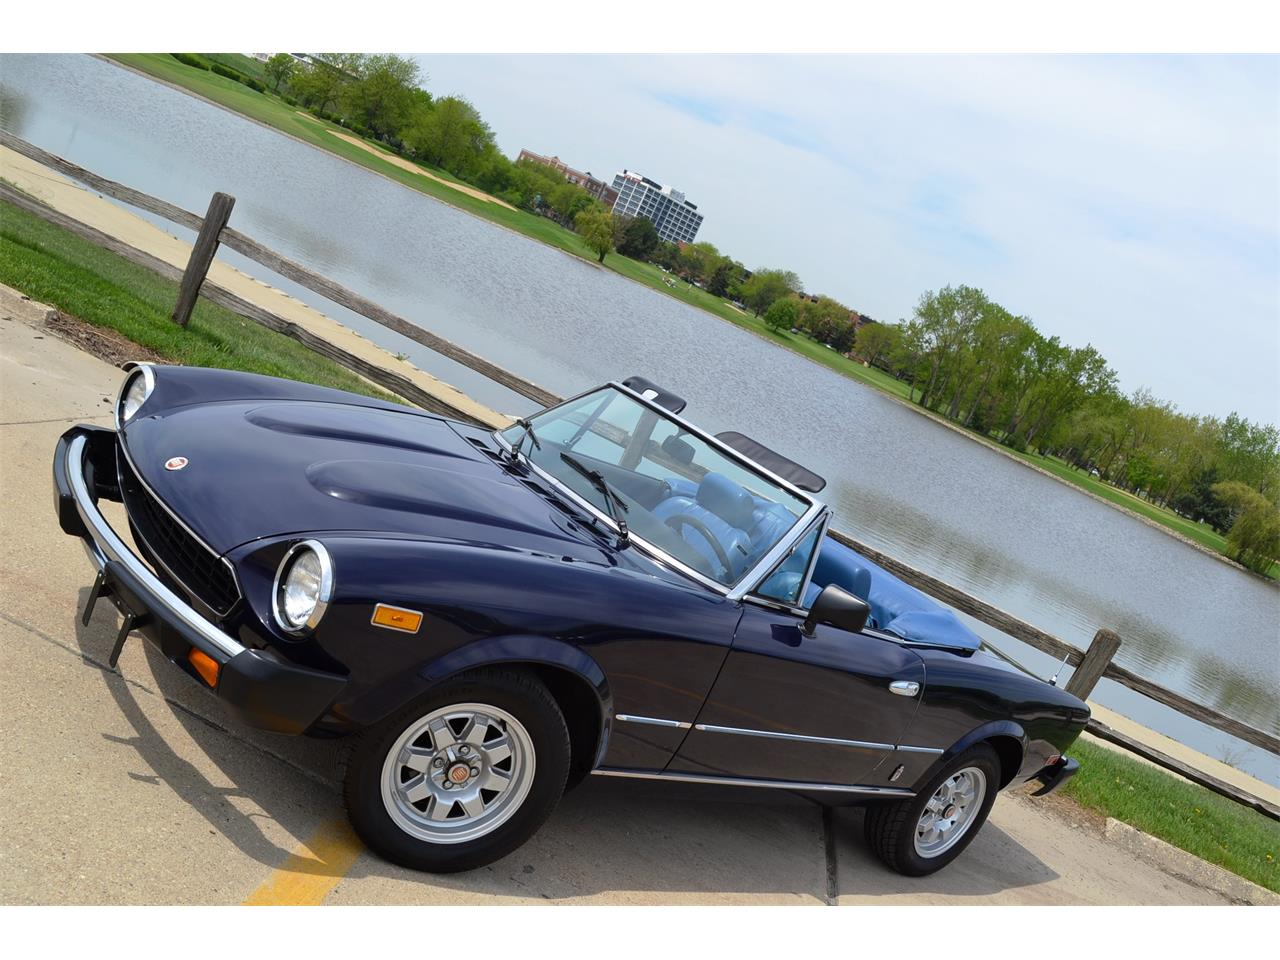 1981 Fiat Spider for sale in Barrington, IL – photo 2